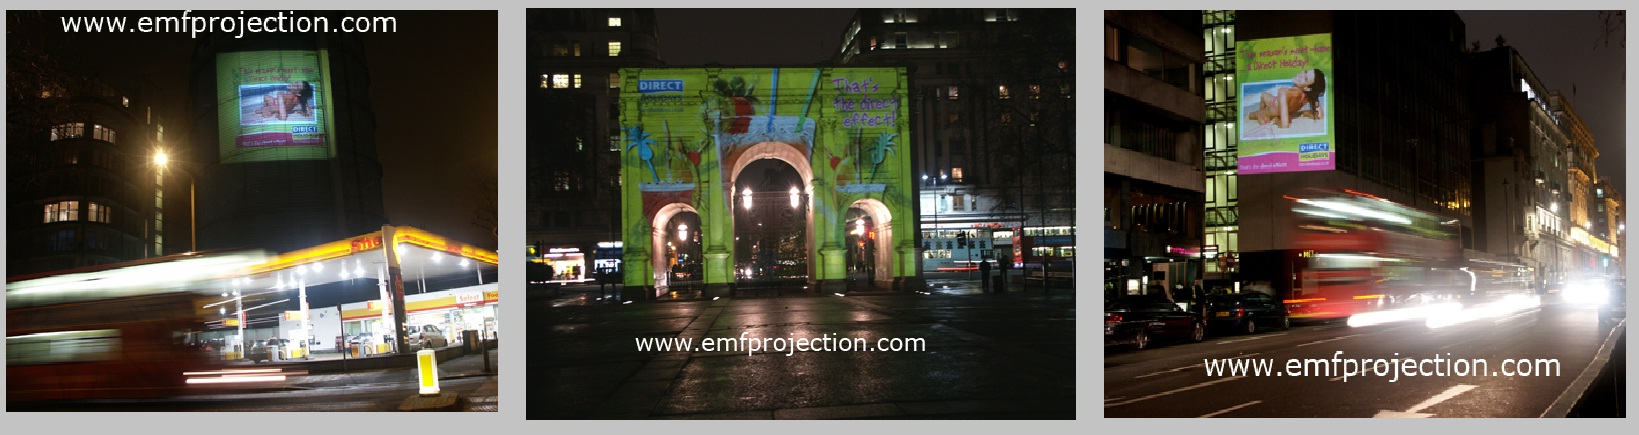 Direct Holiday projection advertising campaign accross the UK